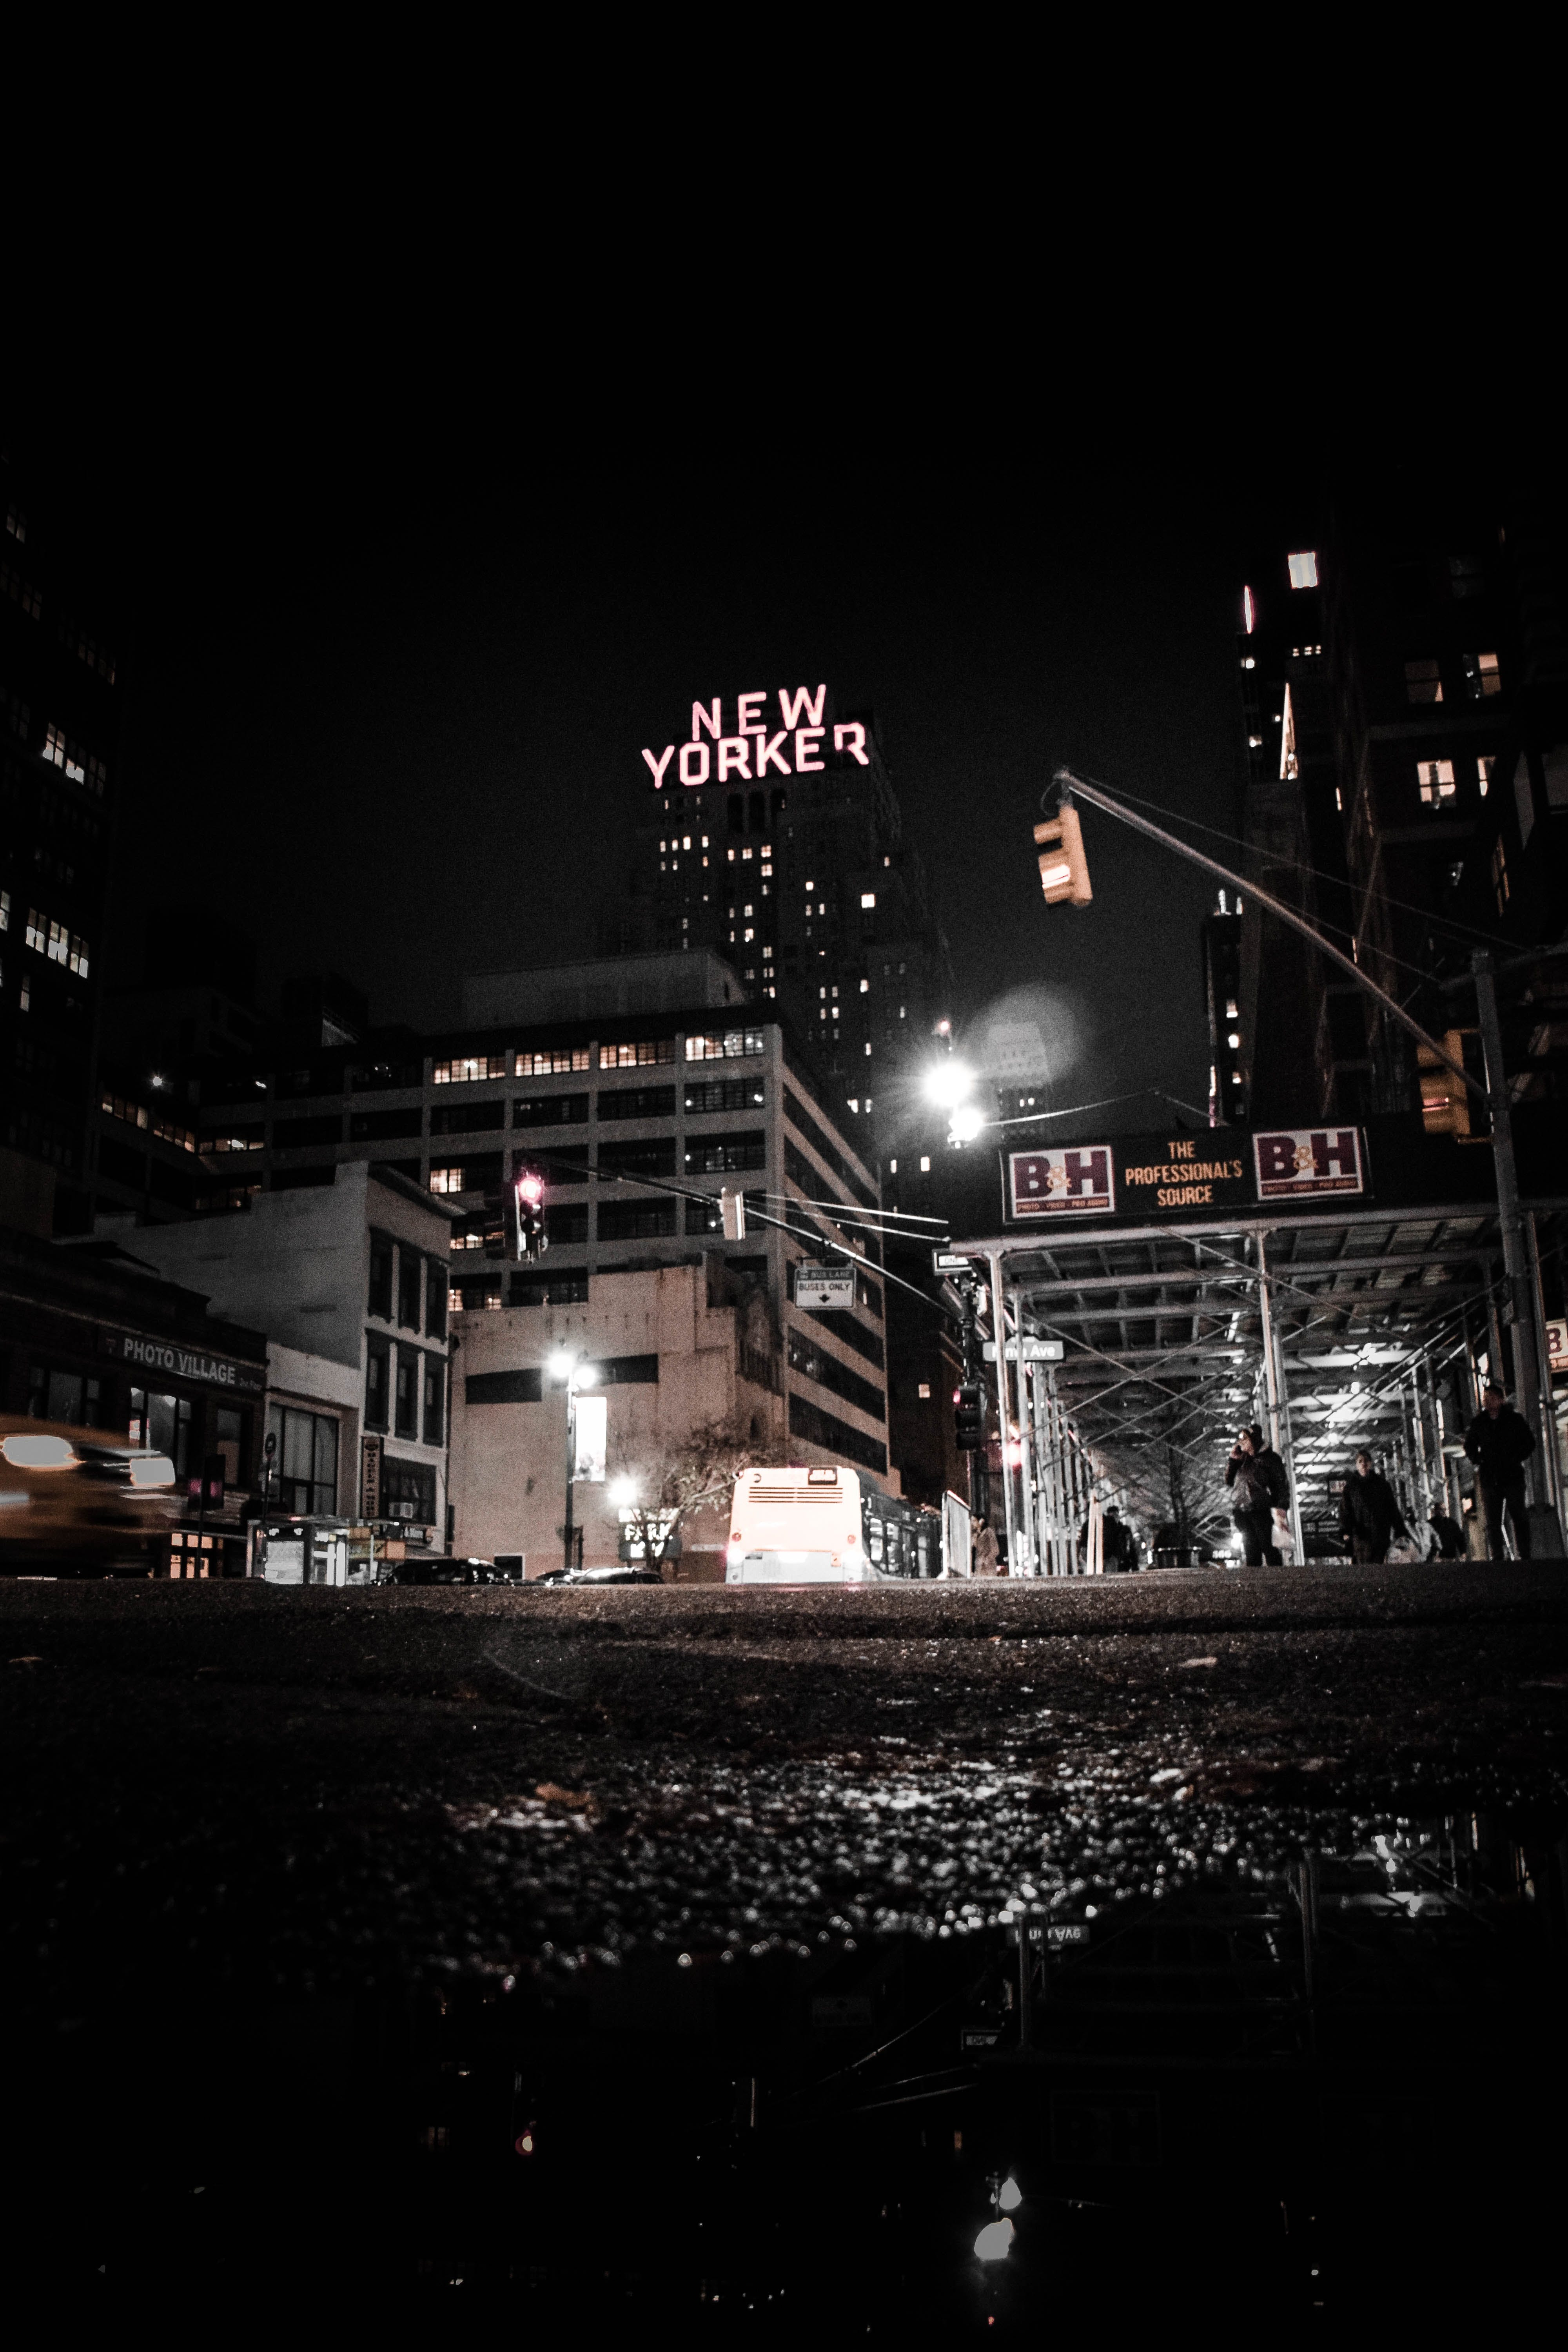 New Yorker Sign at Night